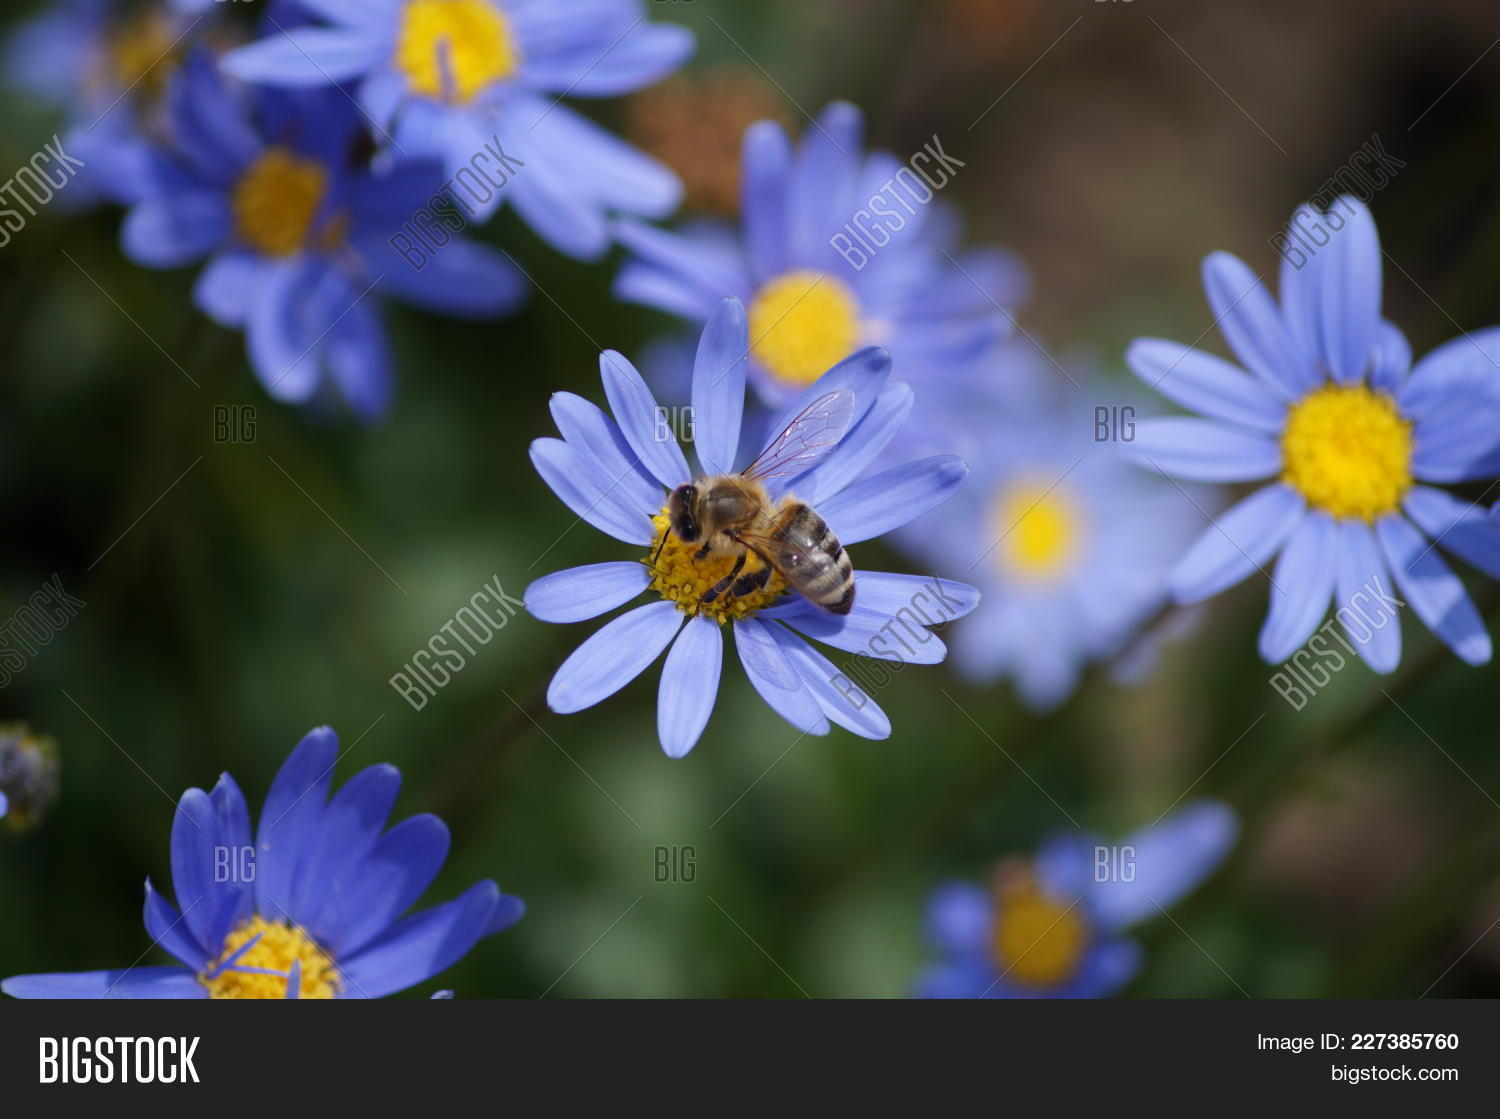 Lilac flower bee image photo free trial bigstock lilac flower with a bee collecting pollen or nectar purple flower like a daisy in izmirmasajfo